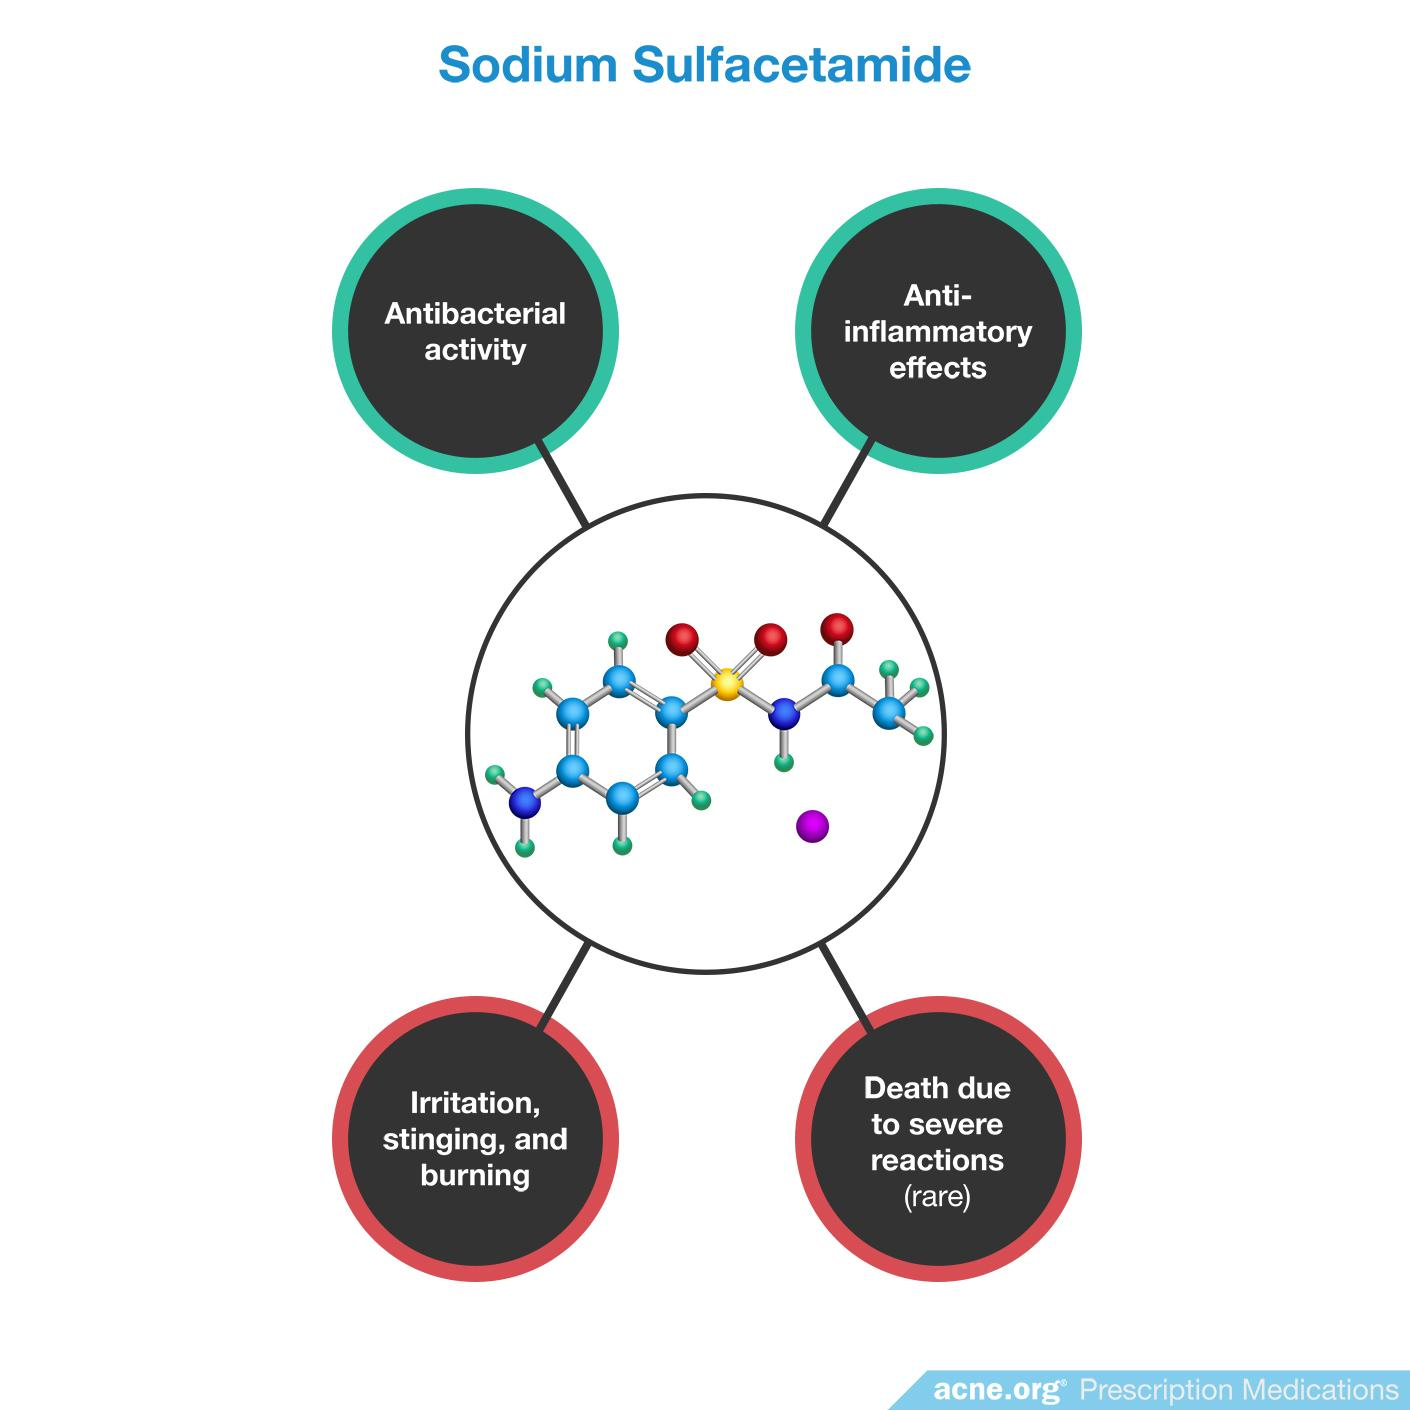 Sodium Sulfacetamide Effects/Side Effects